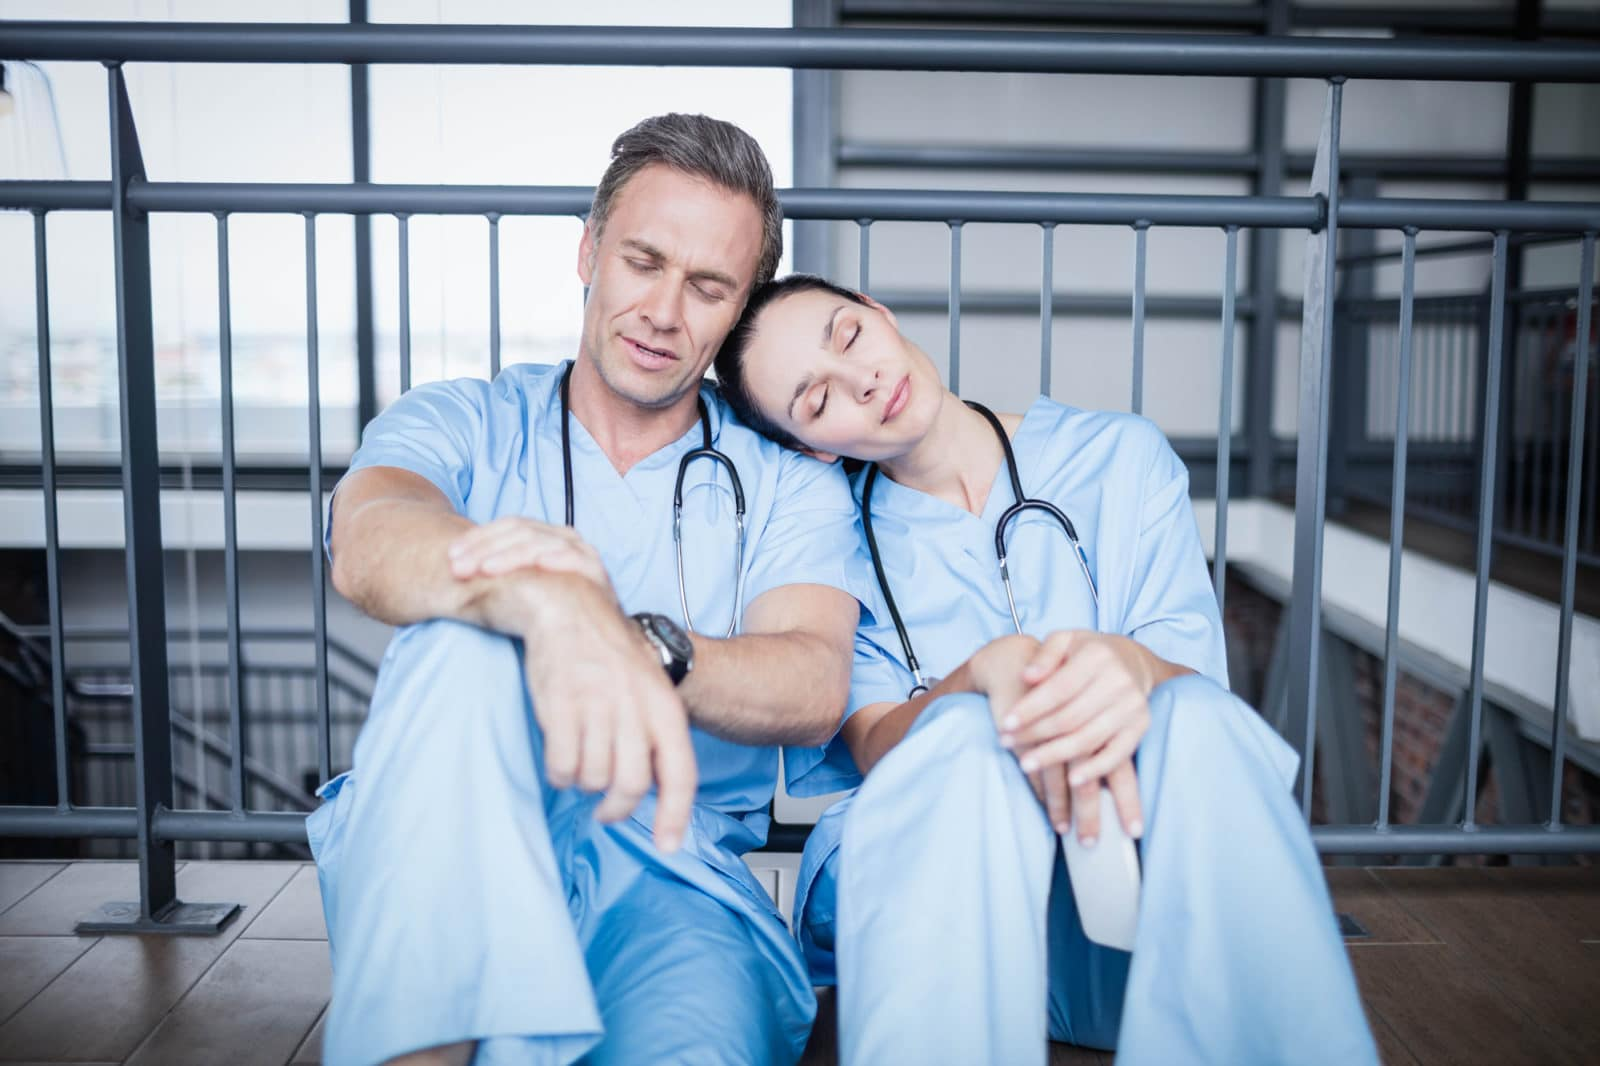 hospital staff napping on the floor